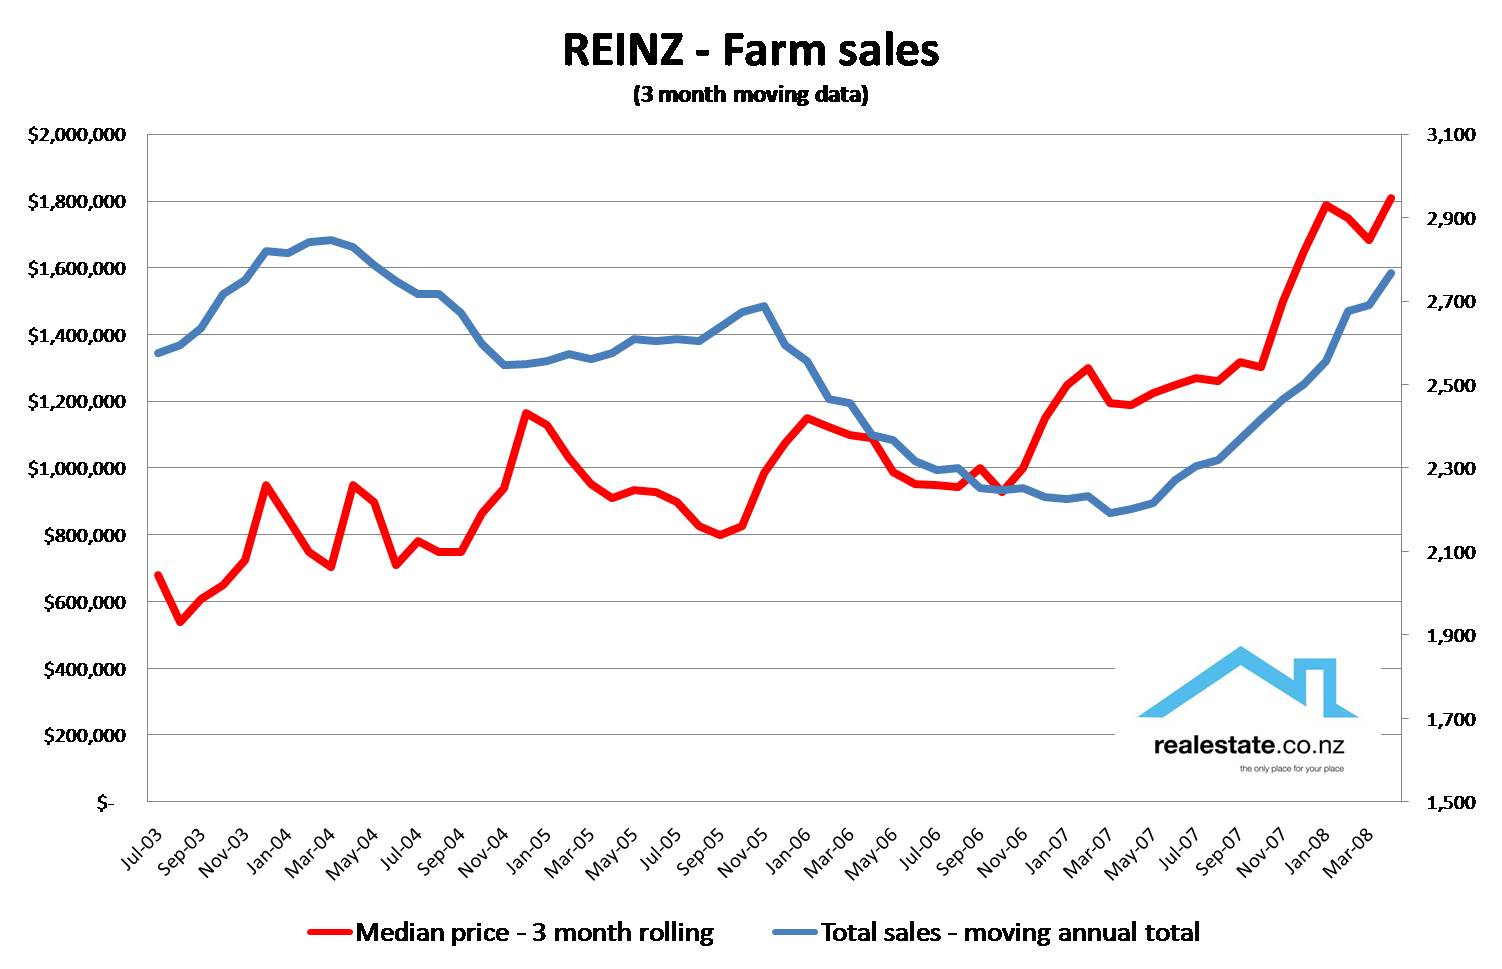 REINZ Farm sales and prices - May 2008